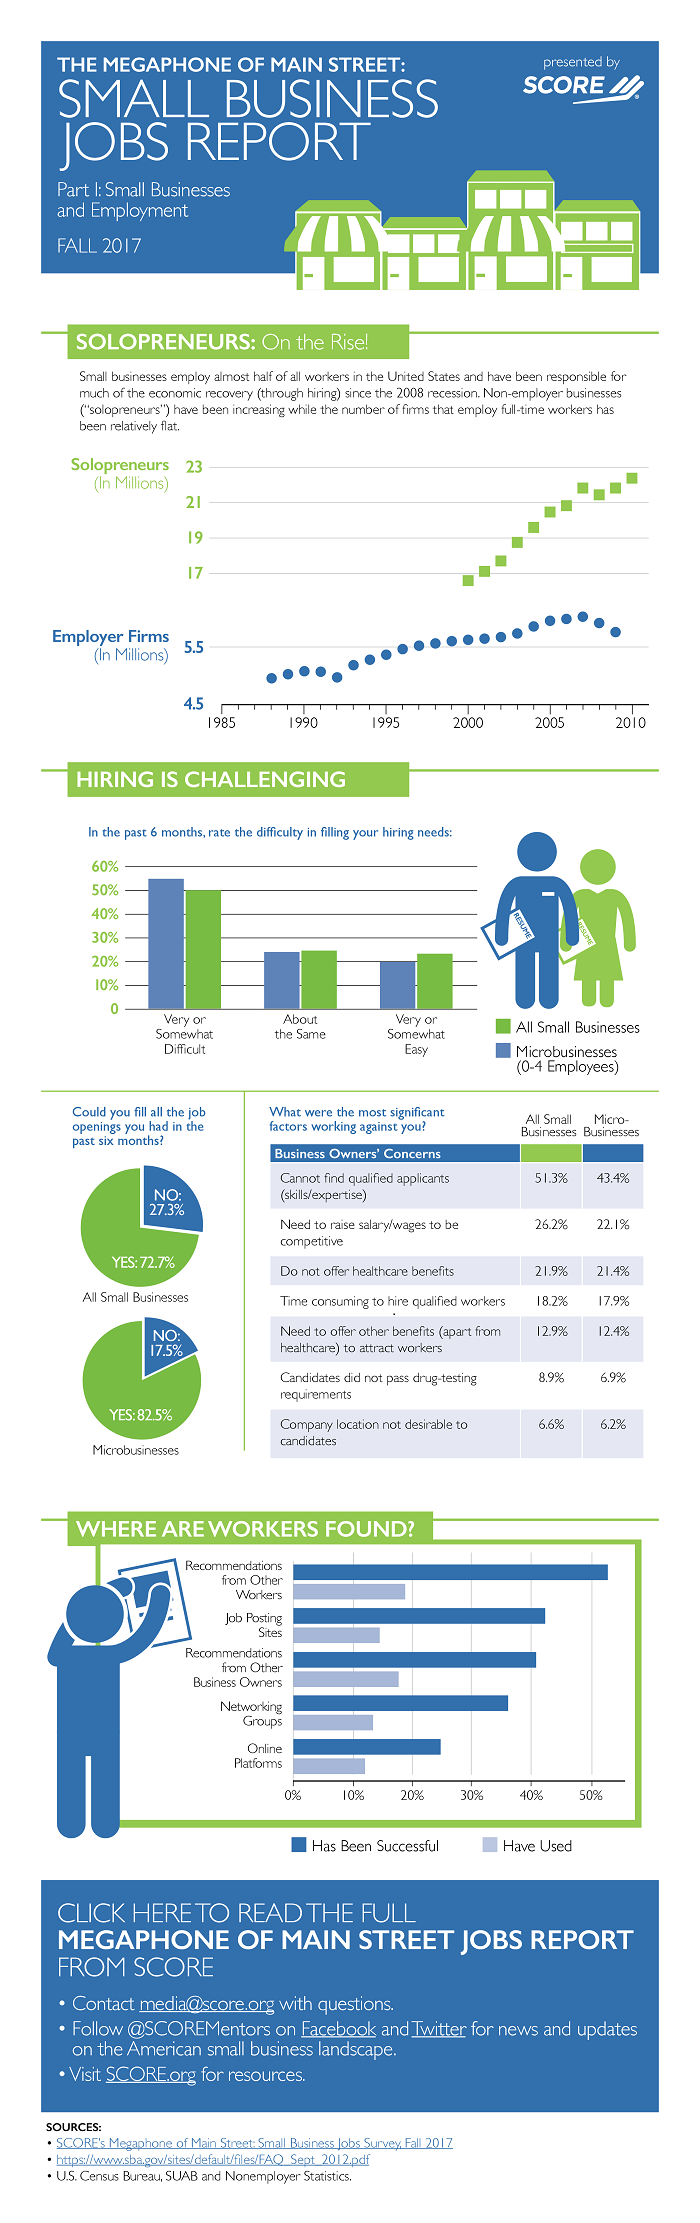 The Megaphone of Main Street Small Jobs Report Infographic # 1: Small Businesses and Employment